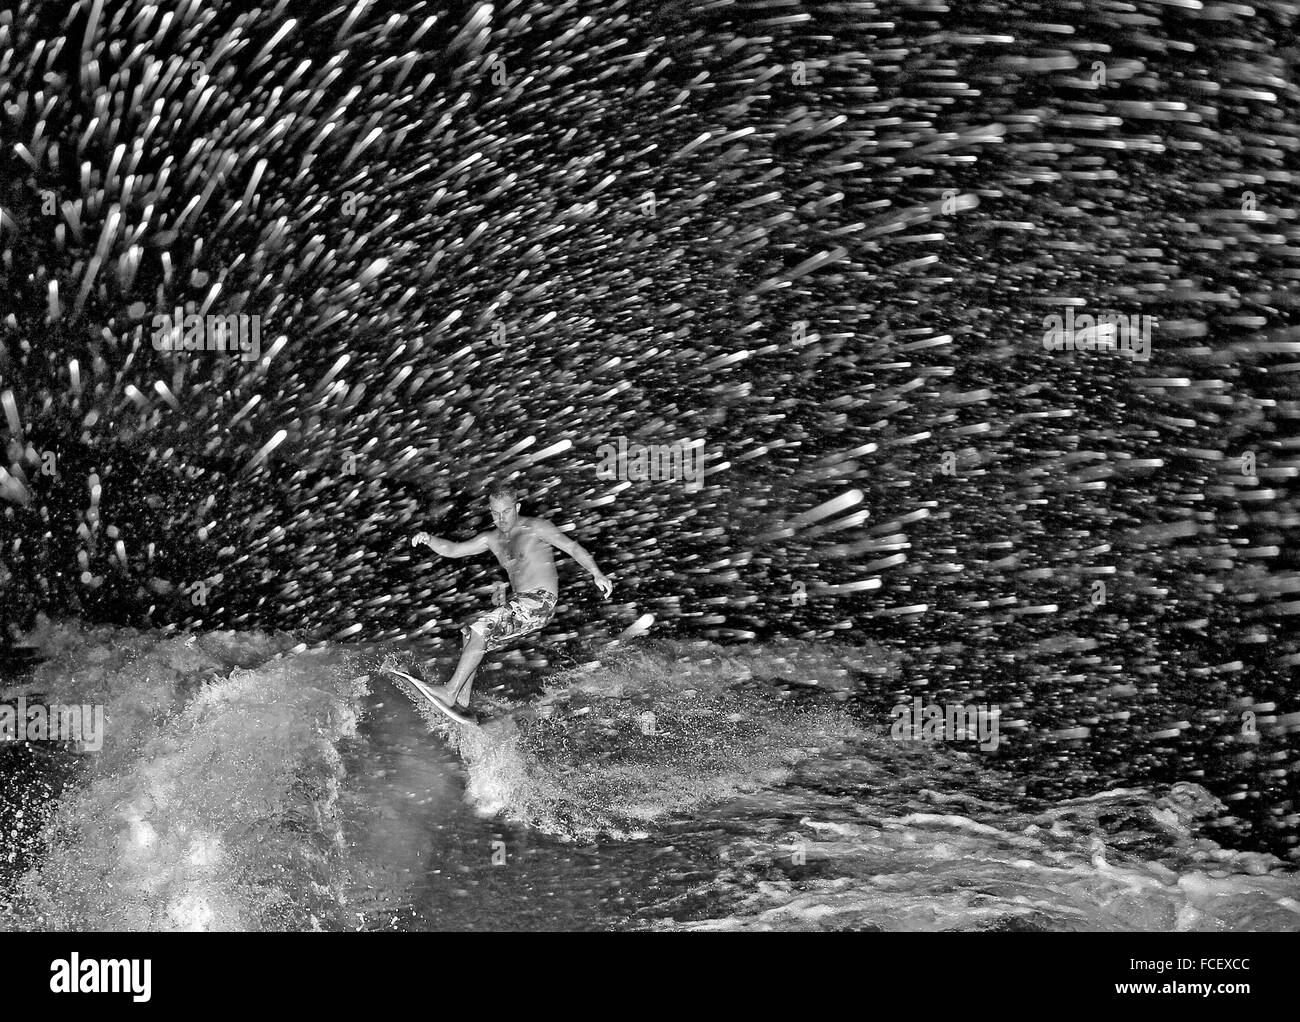 Man Surfing In Sea At Night - Stock Image